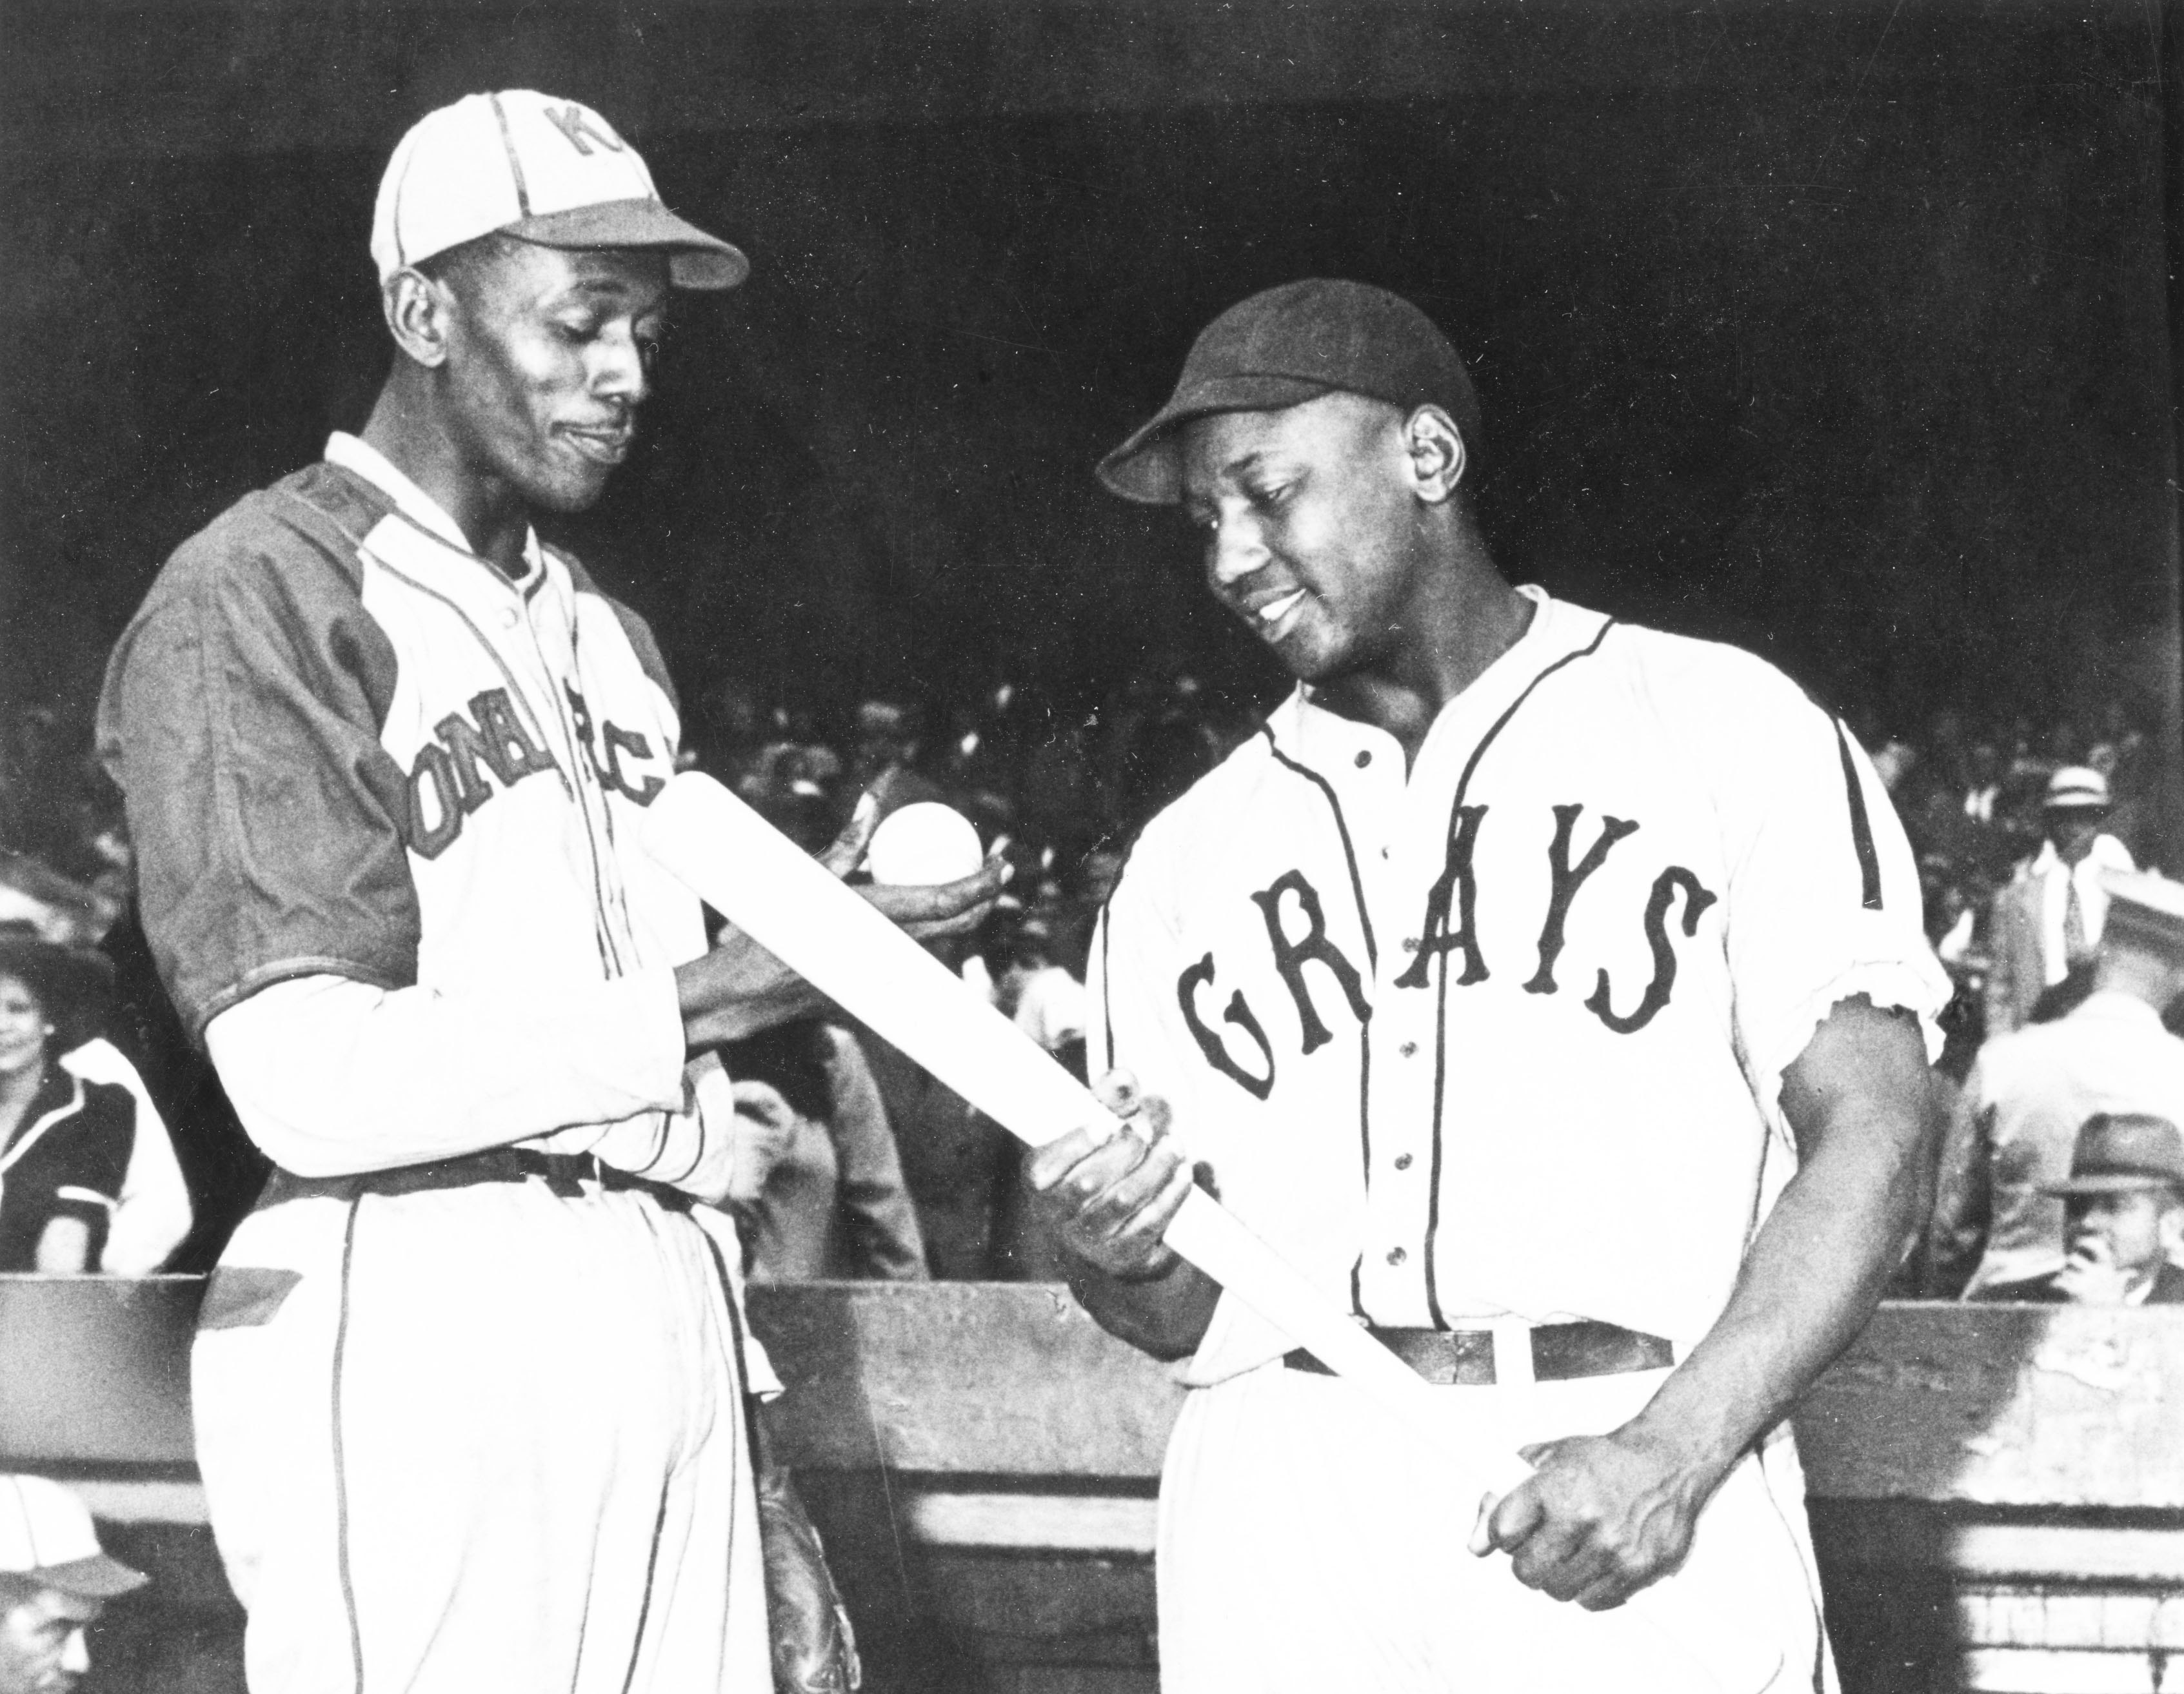 adc3db70cc8 Satchel Paige (left) of the Monarchs talks with Josh Gibson (right) of the Homestead  Grays before a game in Kansas City in 1941.